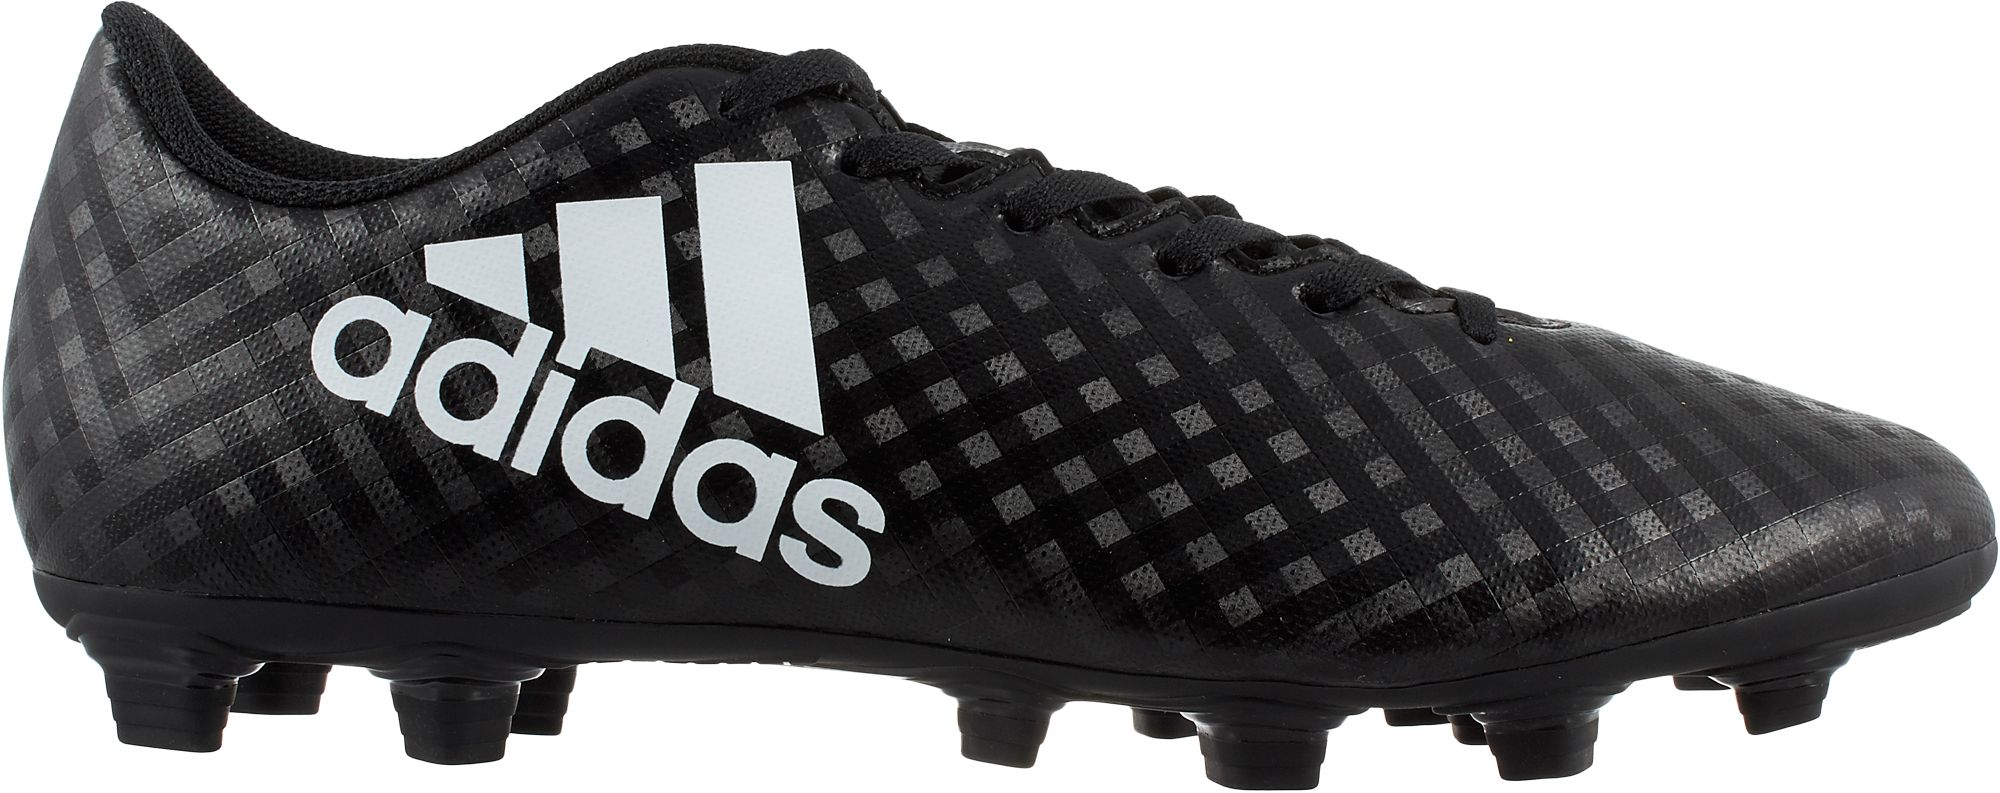 adidas black soccer cleats